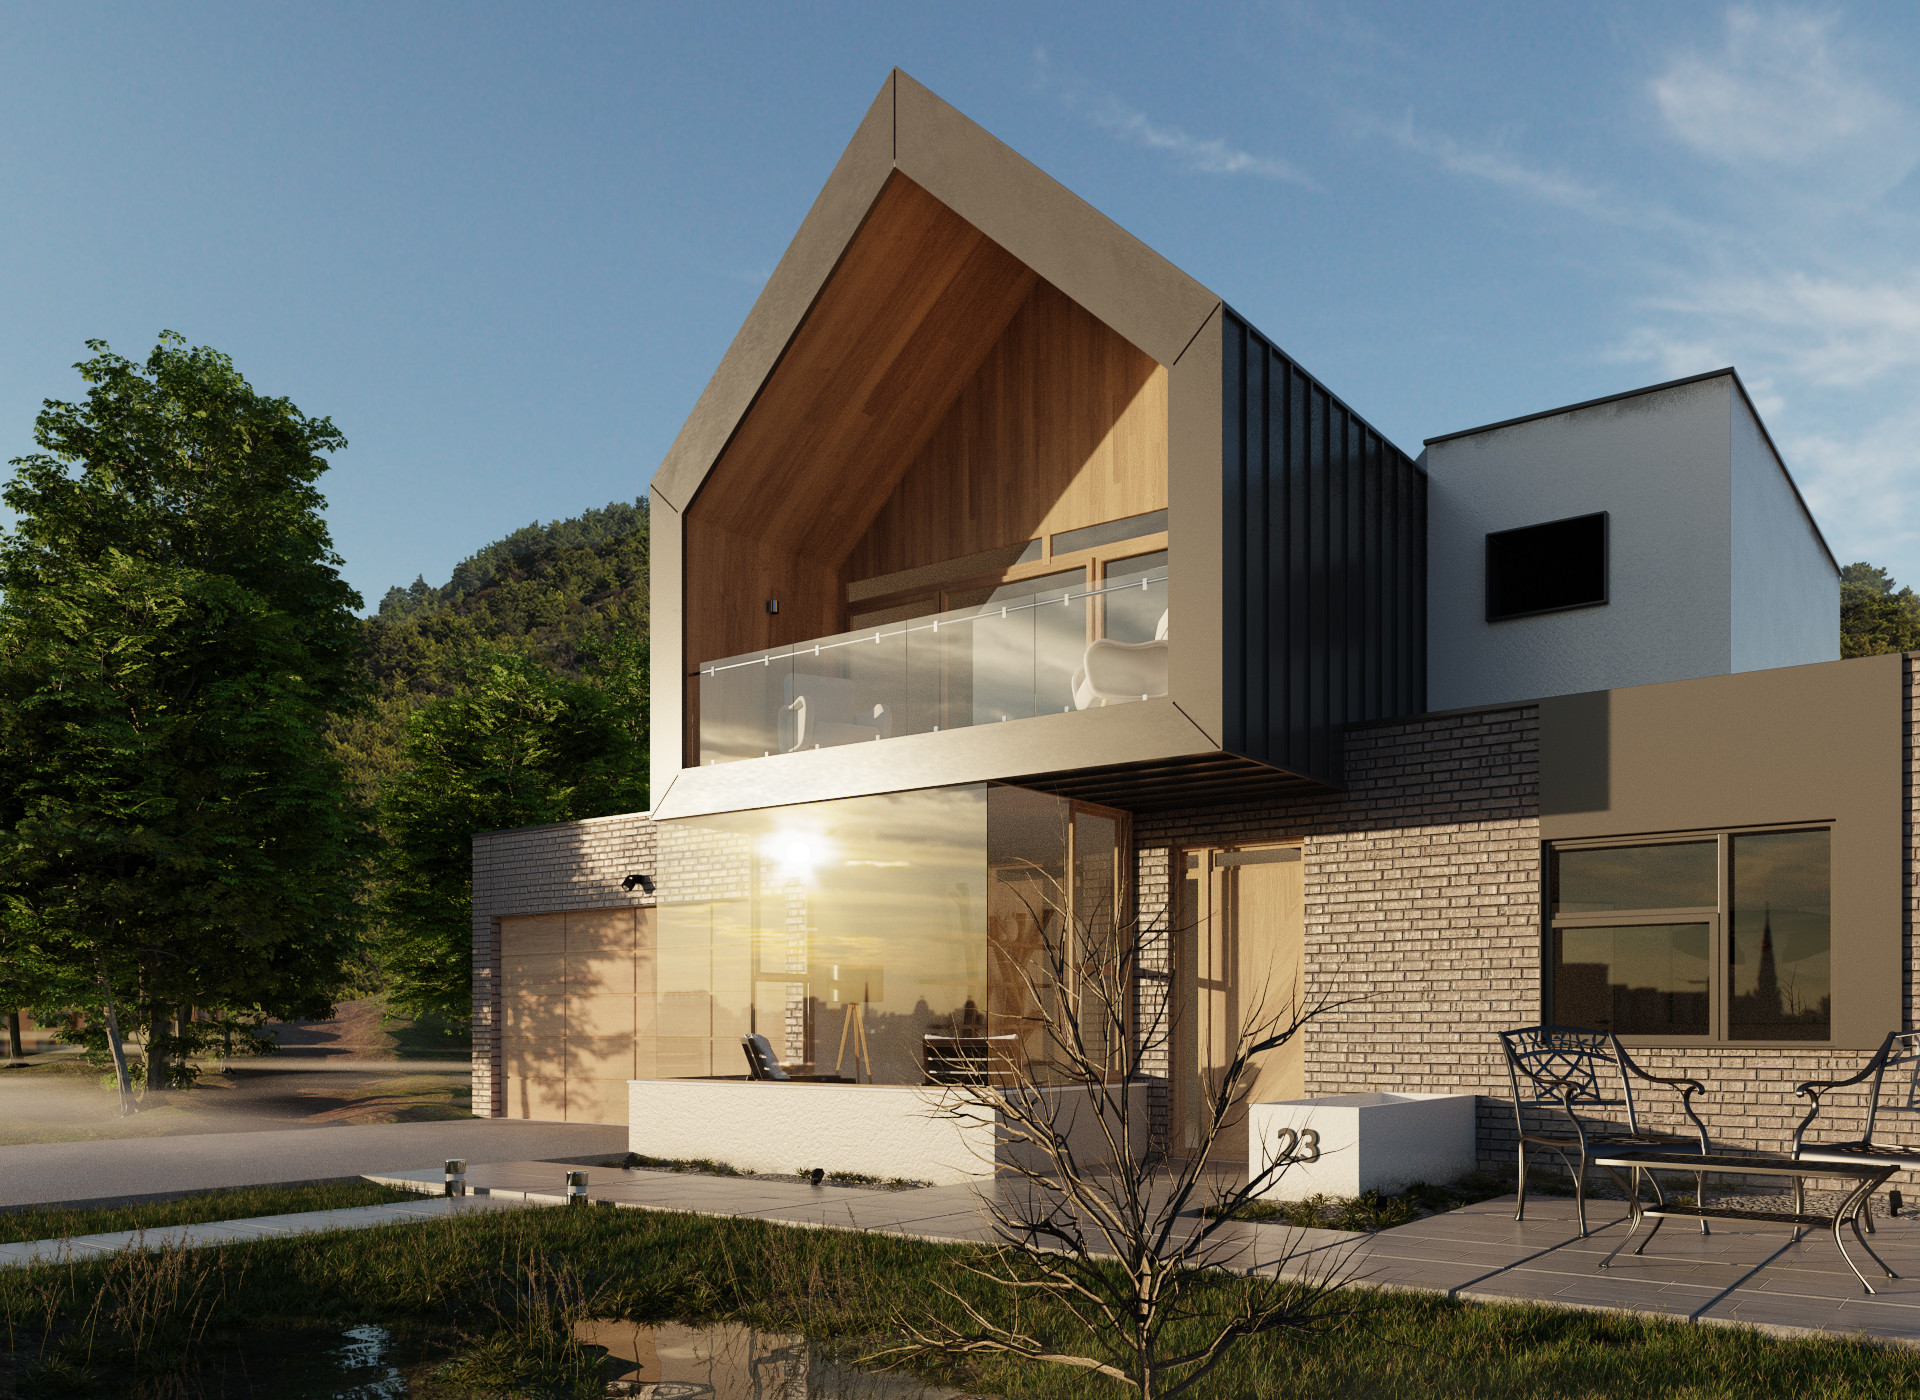 Forest House by  Joan Savalli , using the  Wood  and  Tiles  textures.